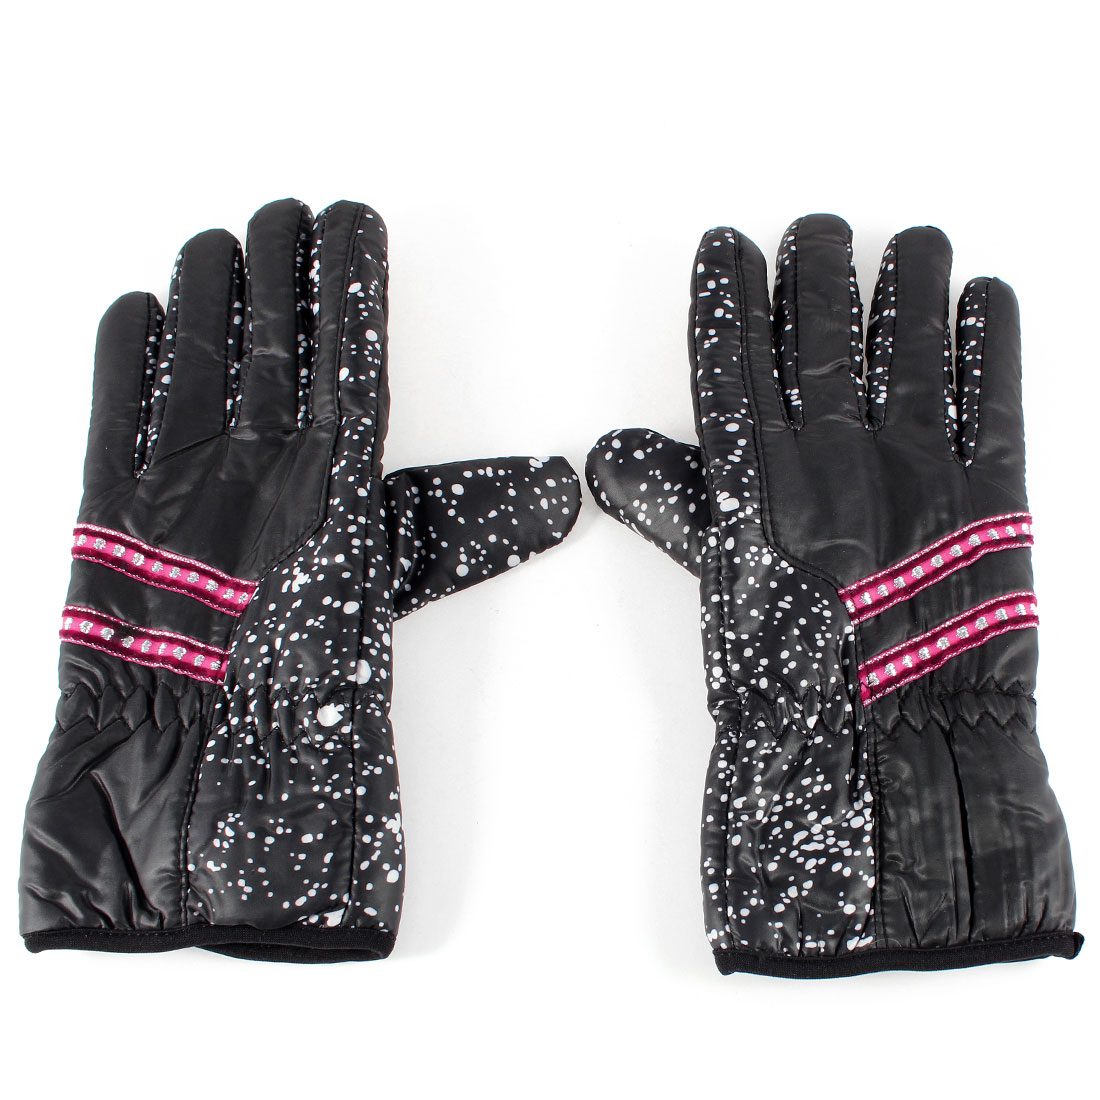 Lady Winter Outdoor Cycling Polyester Full Finger Warm Gloves Pair Black